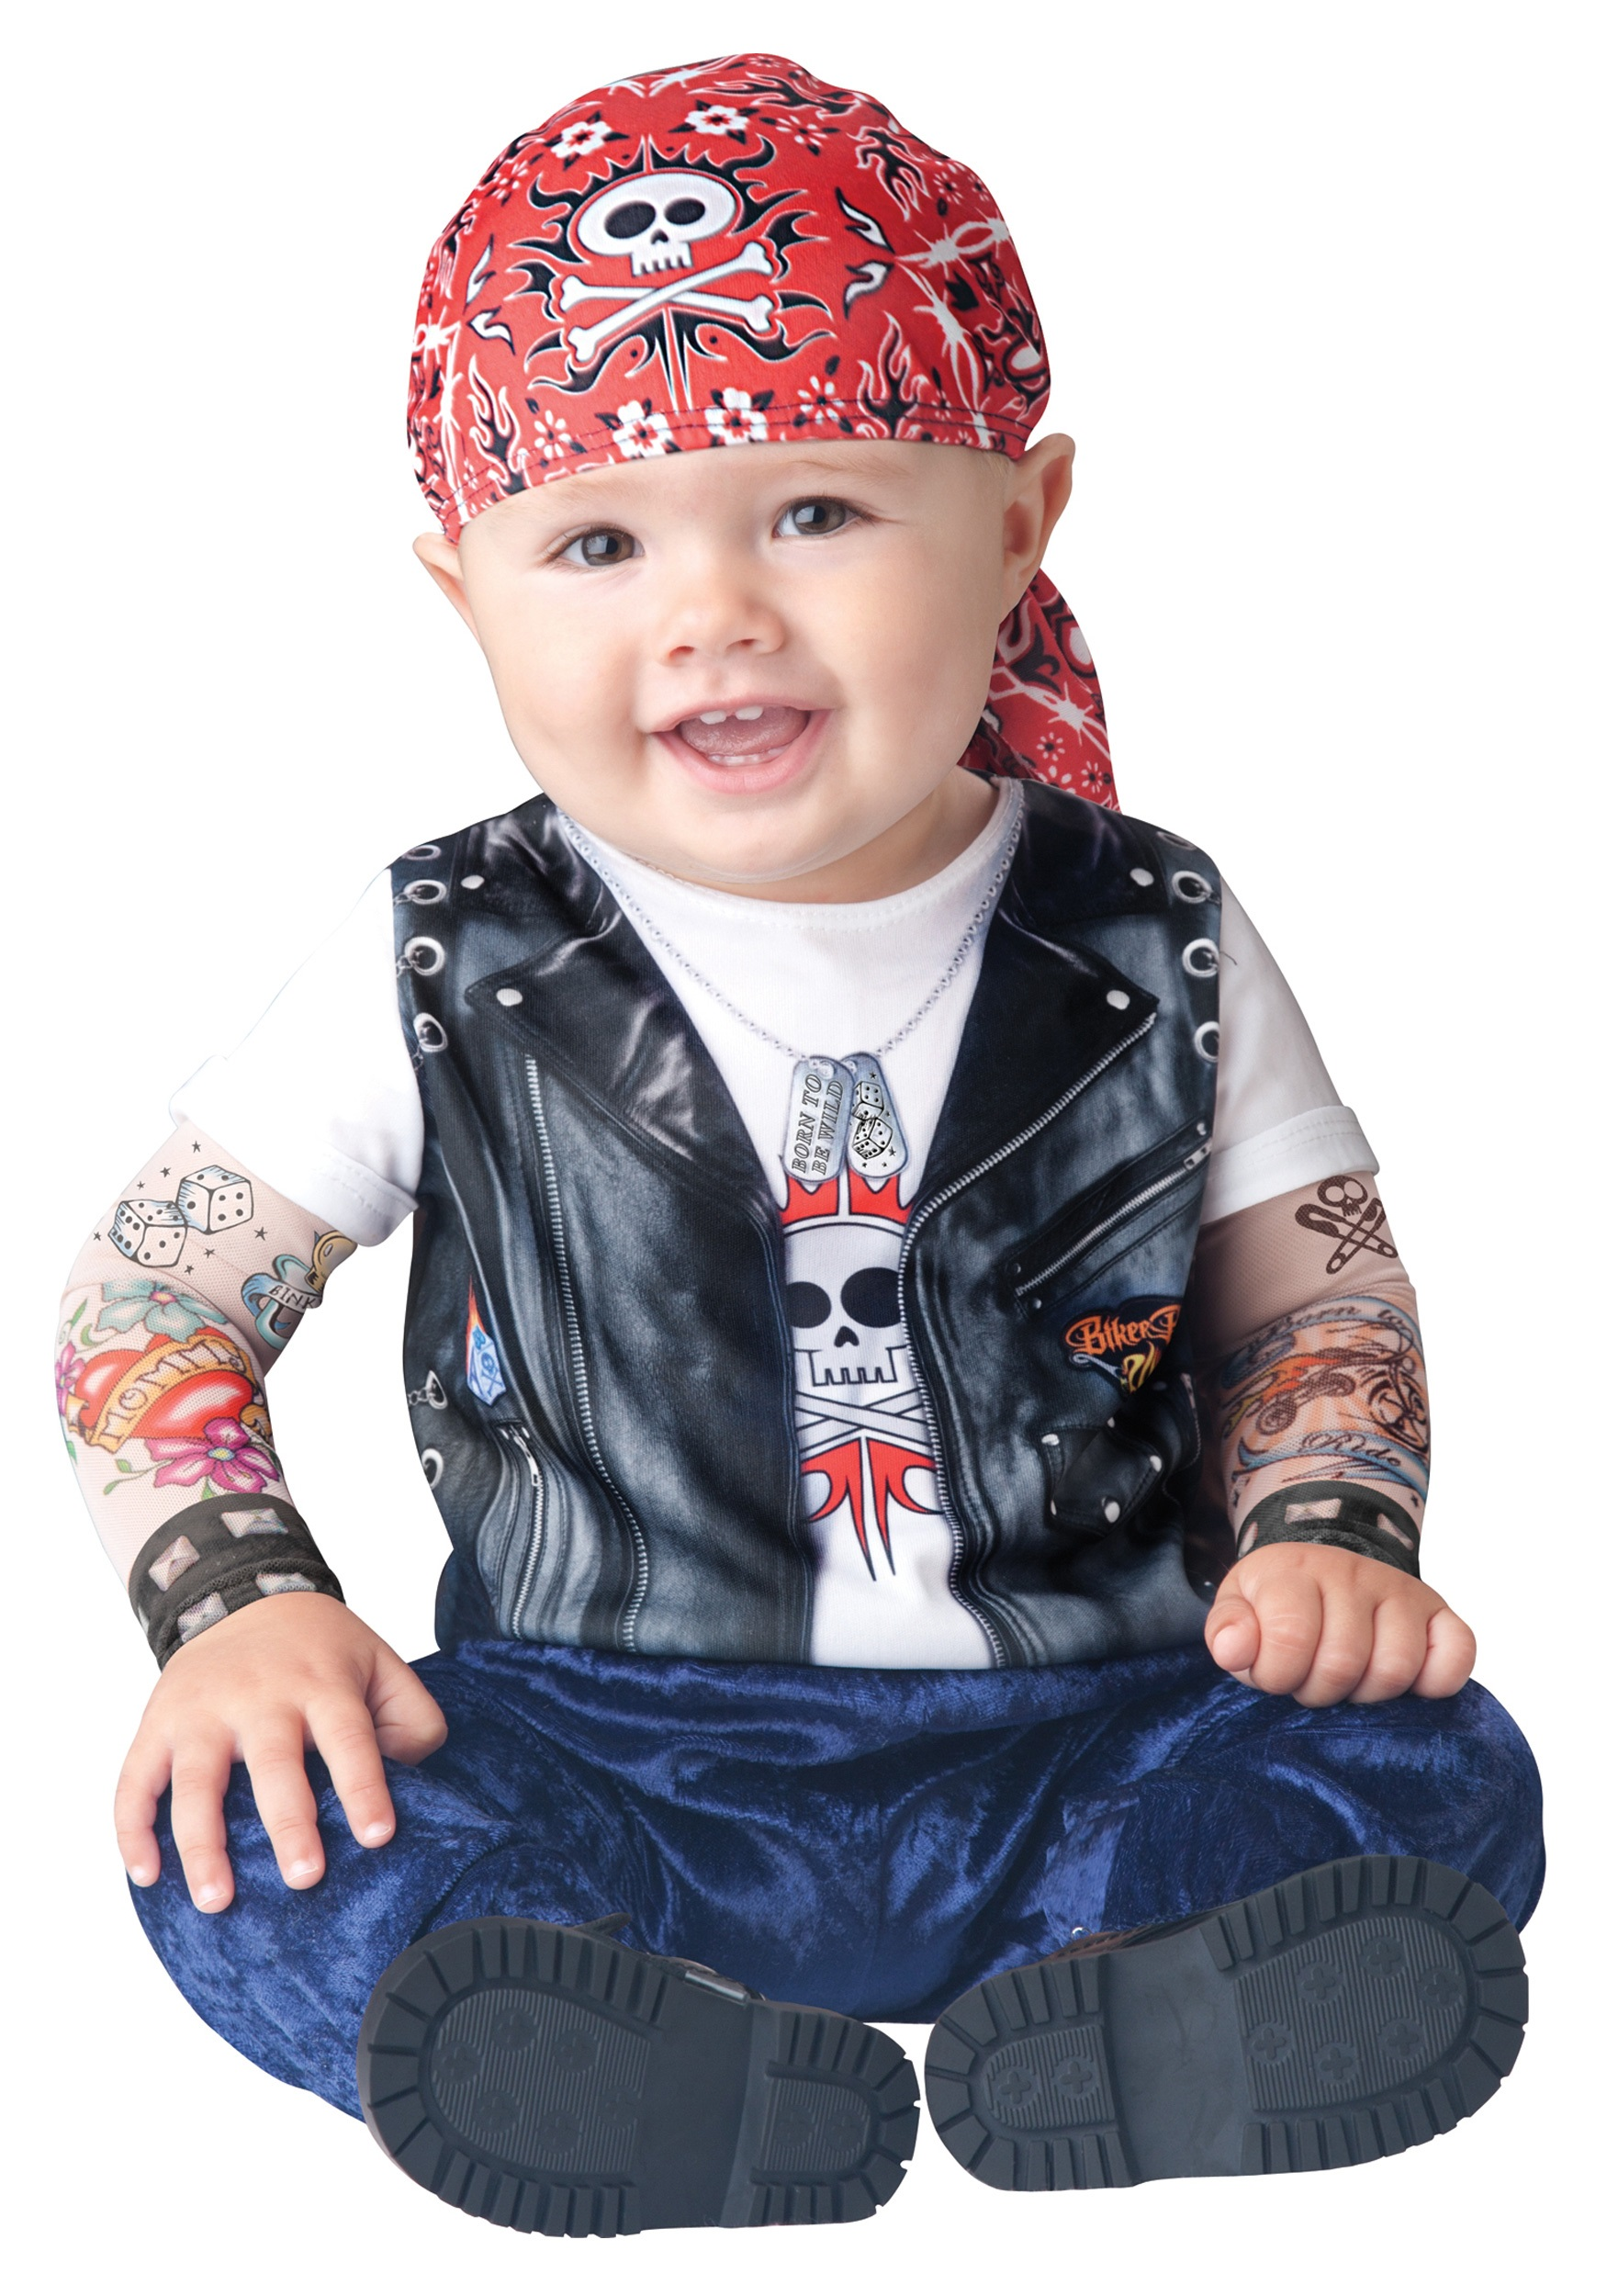 Shop for kids biker costumes online at Target. Free shipping on purchases over $35 and save 5% every day with your Target REDcard.